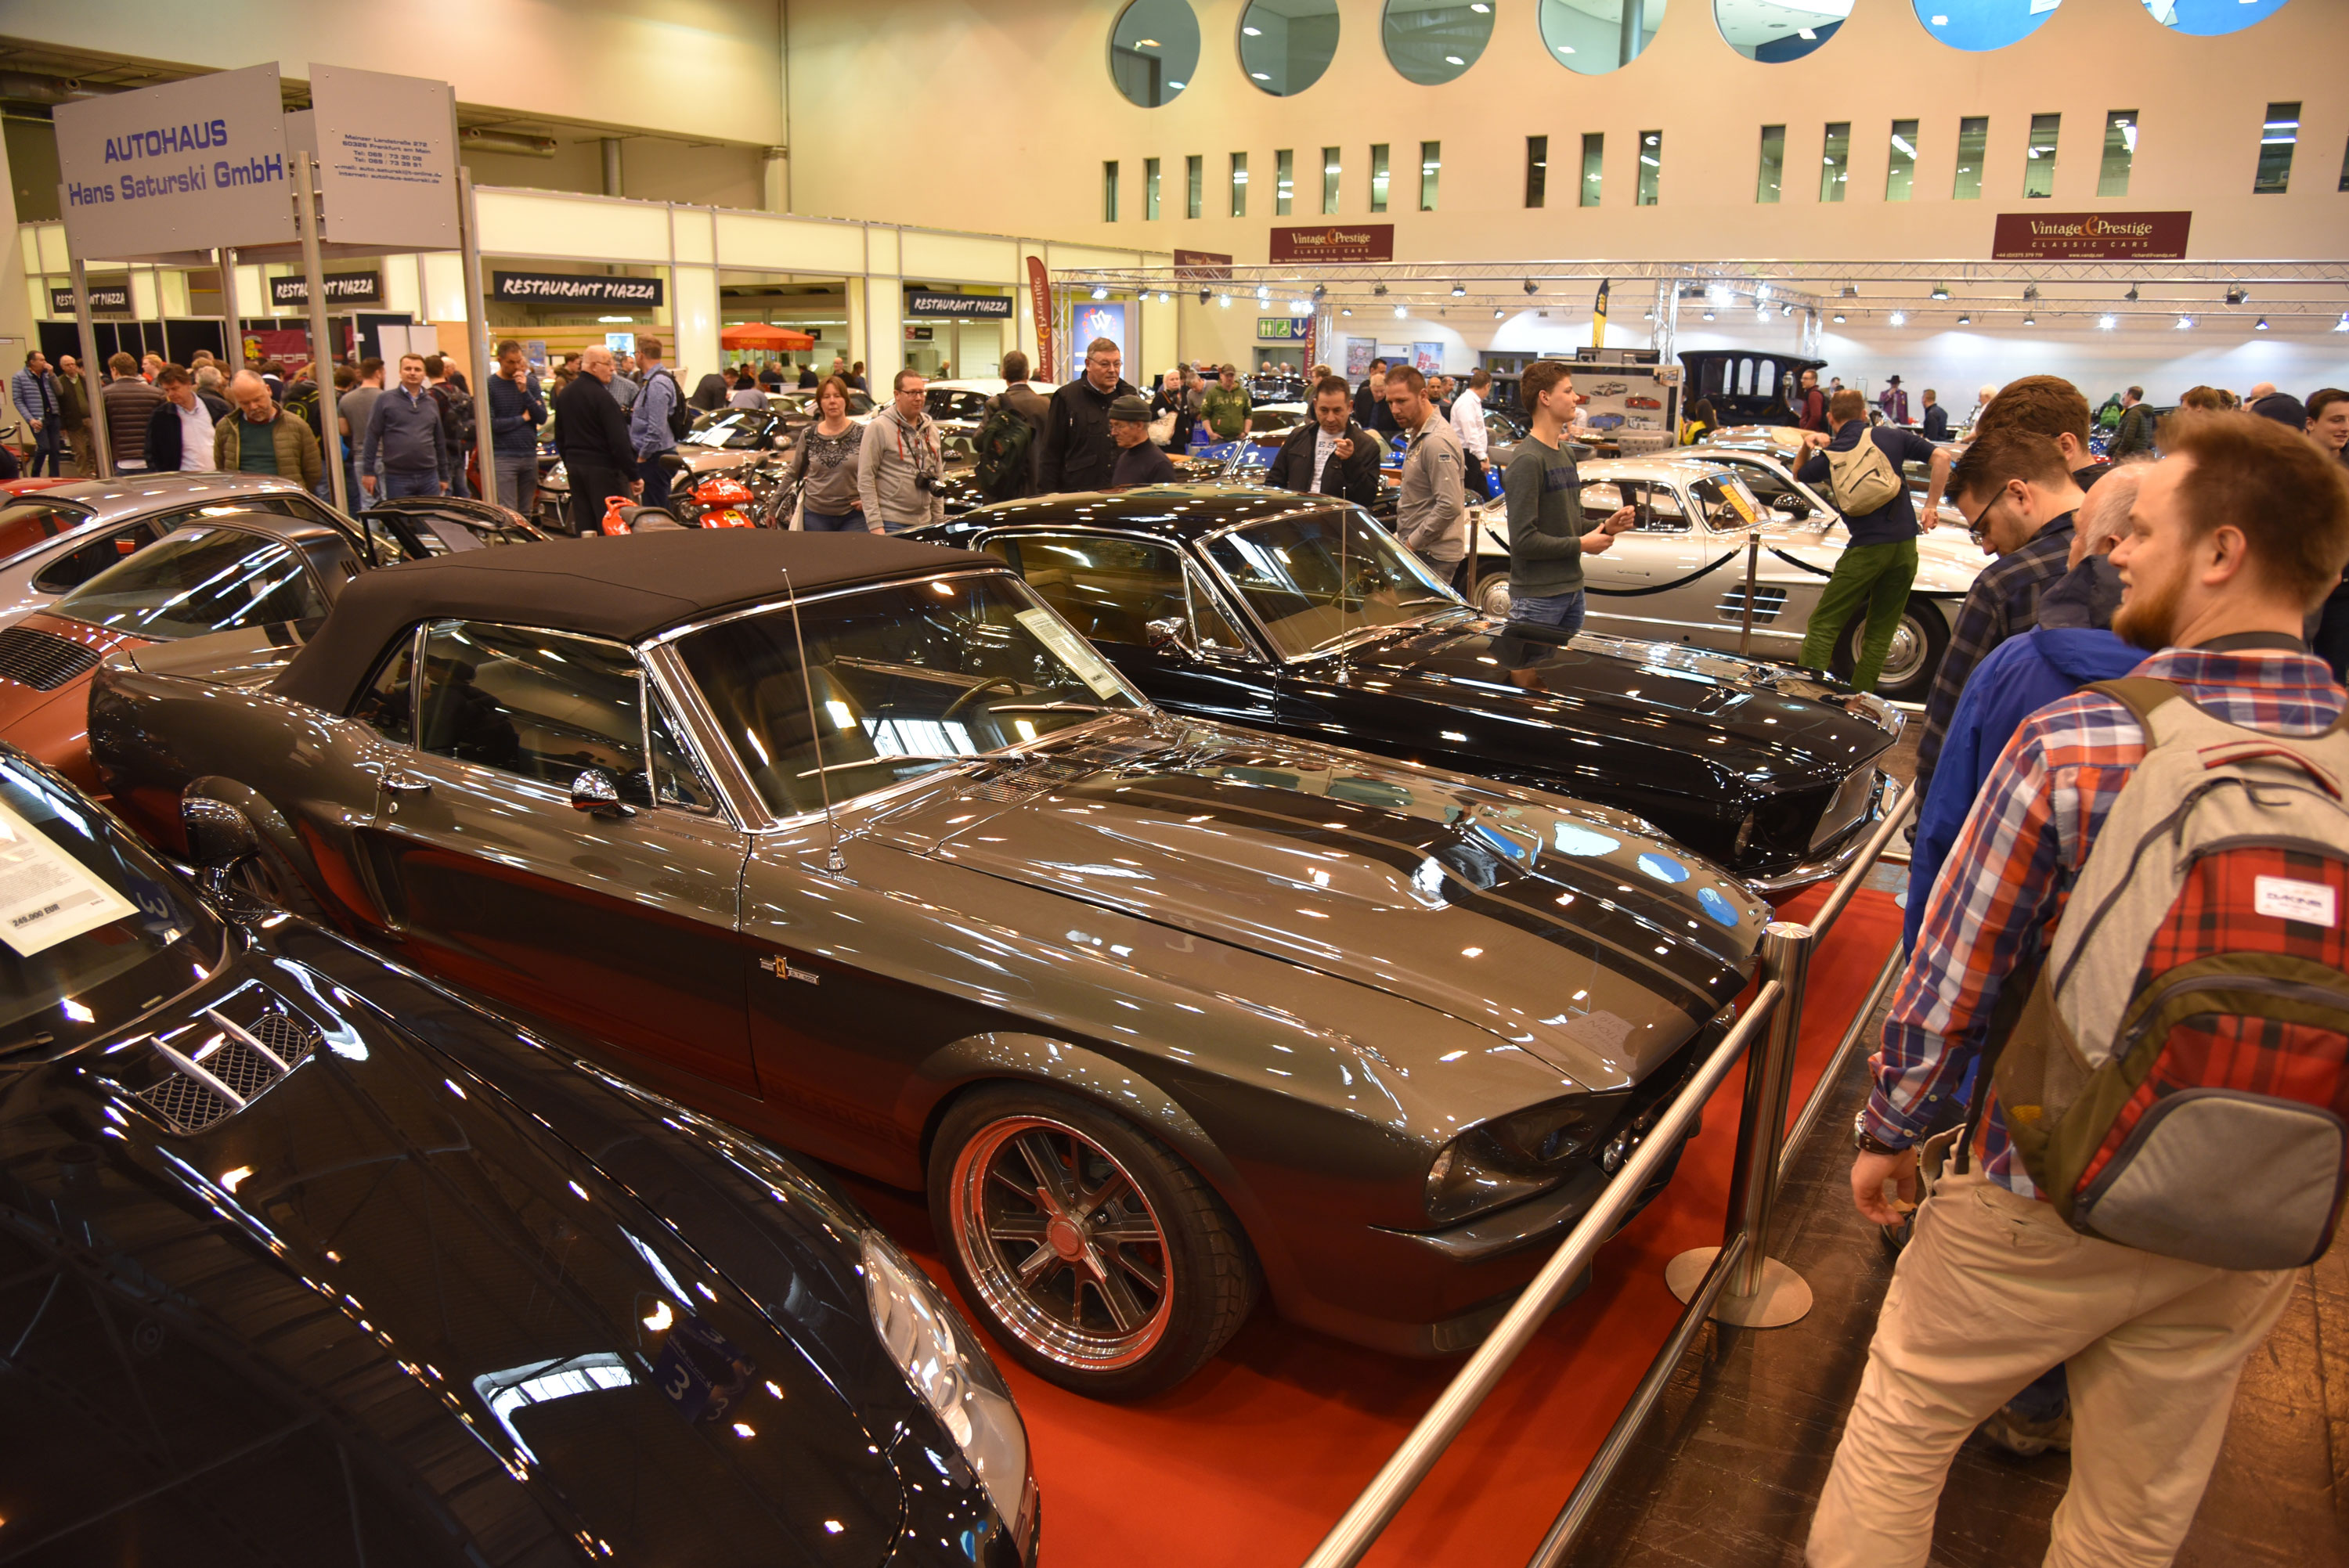 The Mustang was by far the most common American car to be seen at Techno Classica Essen, though a few vintage Cadillacs, a Ford Fairlane racer, and a number of classic Chevys also represented Old Glory on foreign shores.